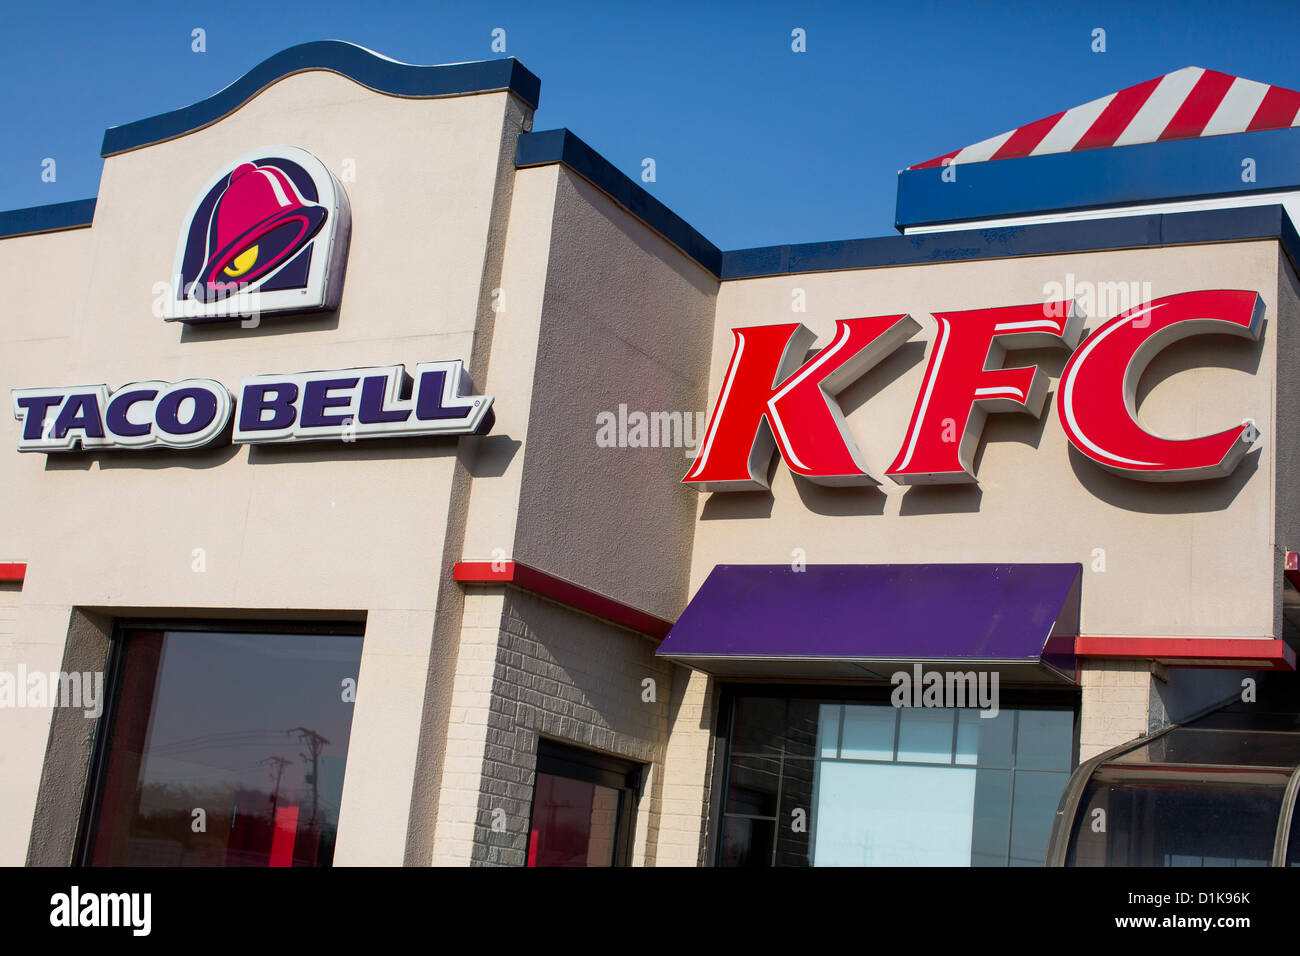 A Taco Bell and Kentucky Fried Chicken (KFC) fast food restaurant.  - Stock Image